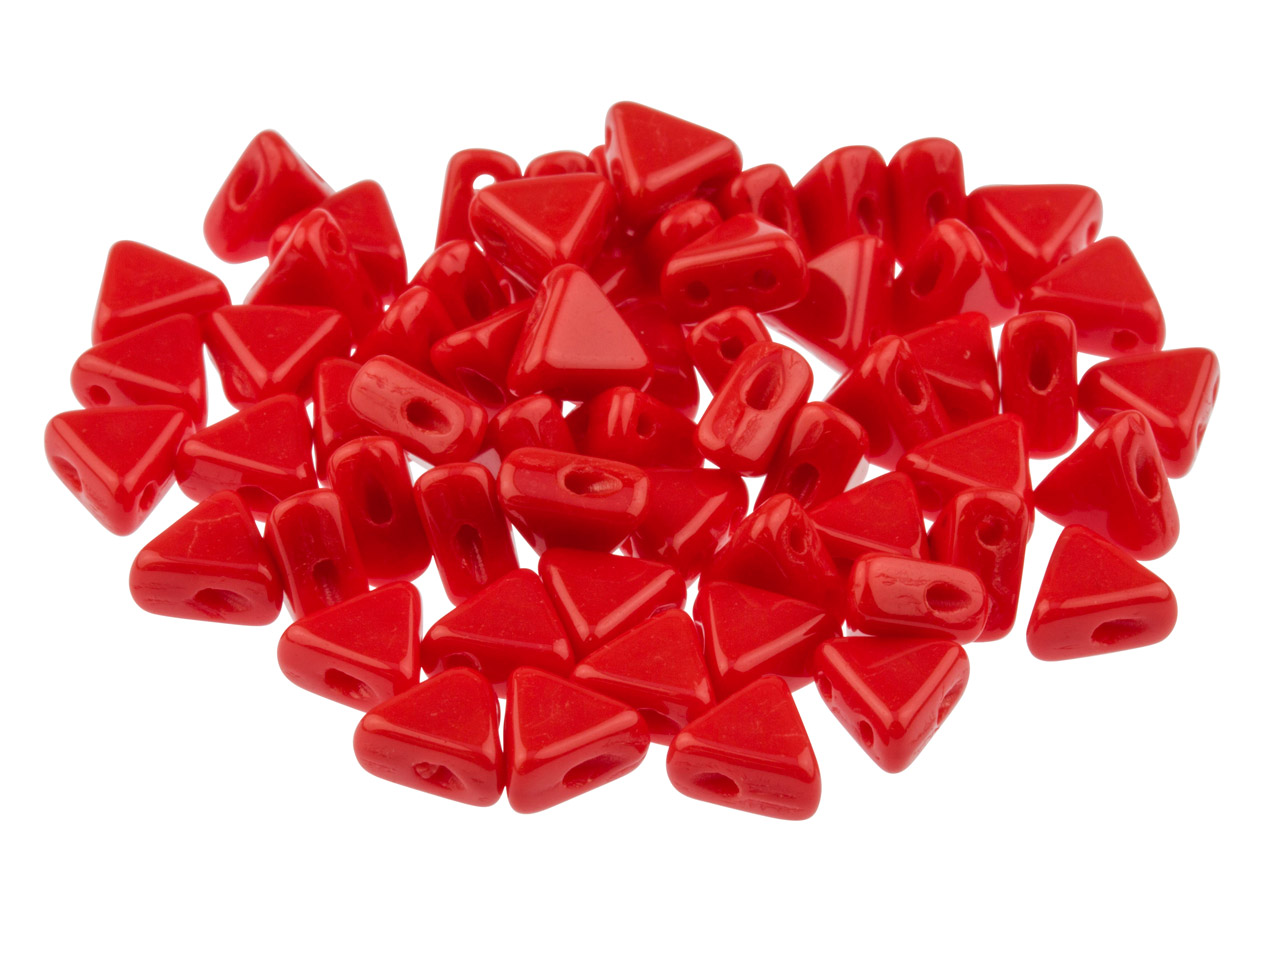 Kheops Puca 6mm Czech Beads, Opaque Coral Red, 9g Tube, Two-holed Beads